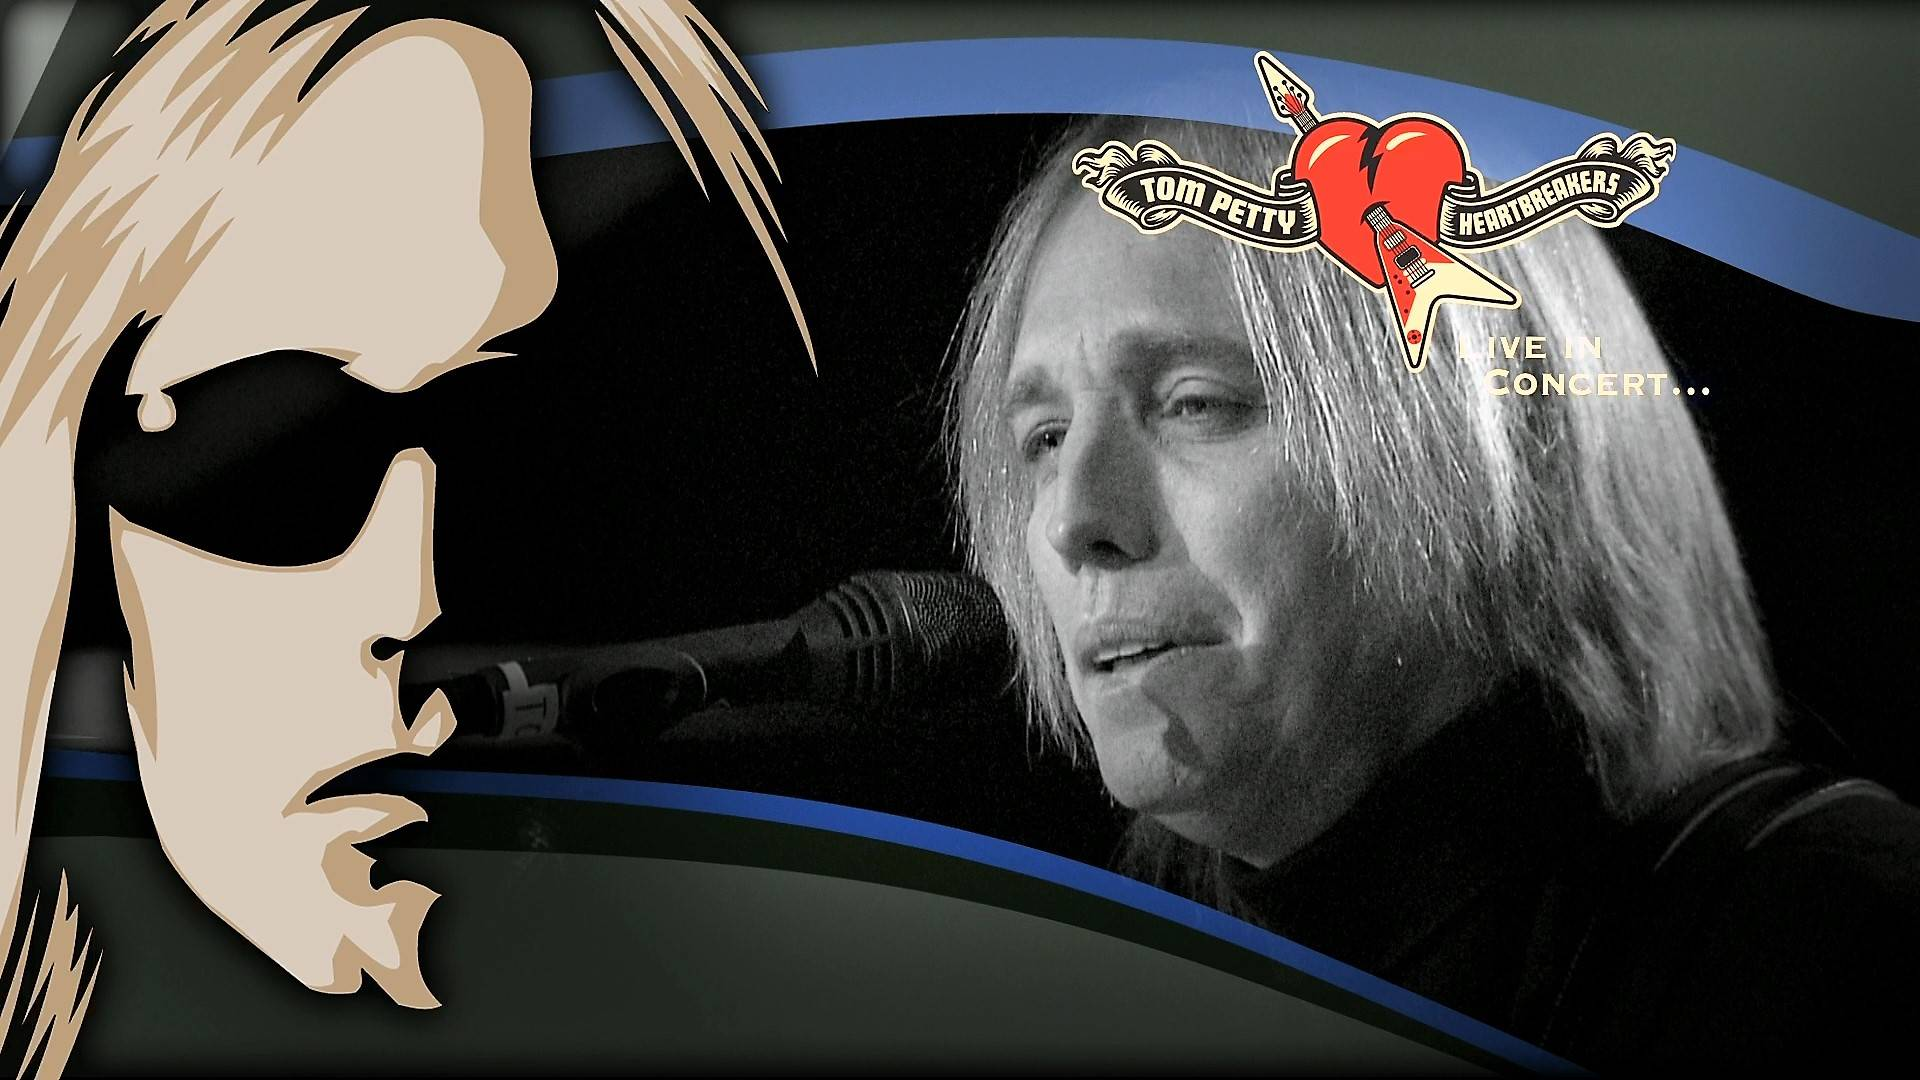 Tom Petty And The Heartbreakers - Soundstage (2008) [Blu-ray]